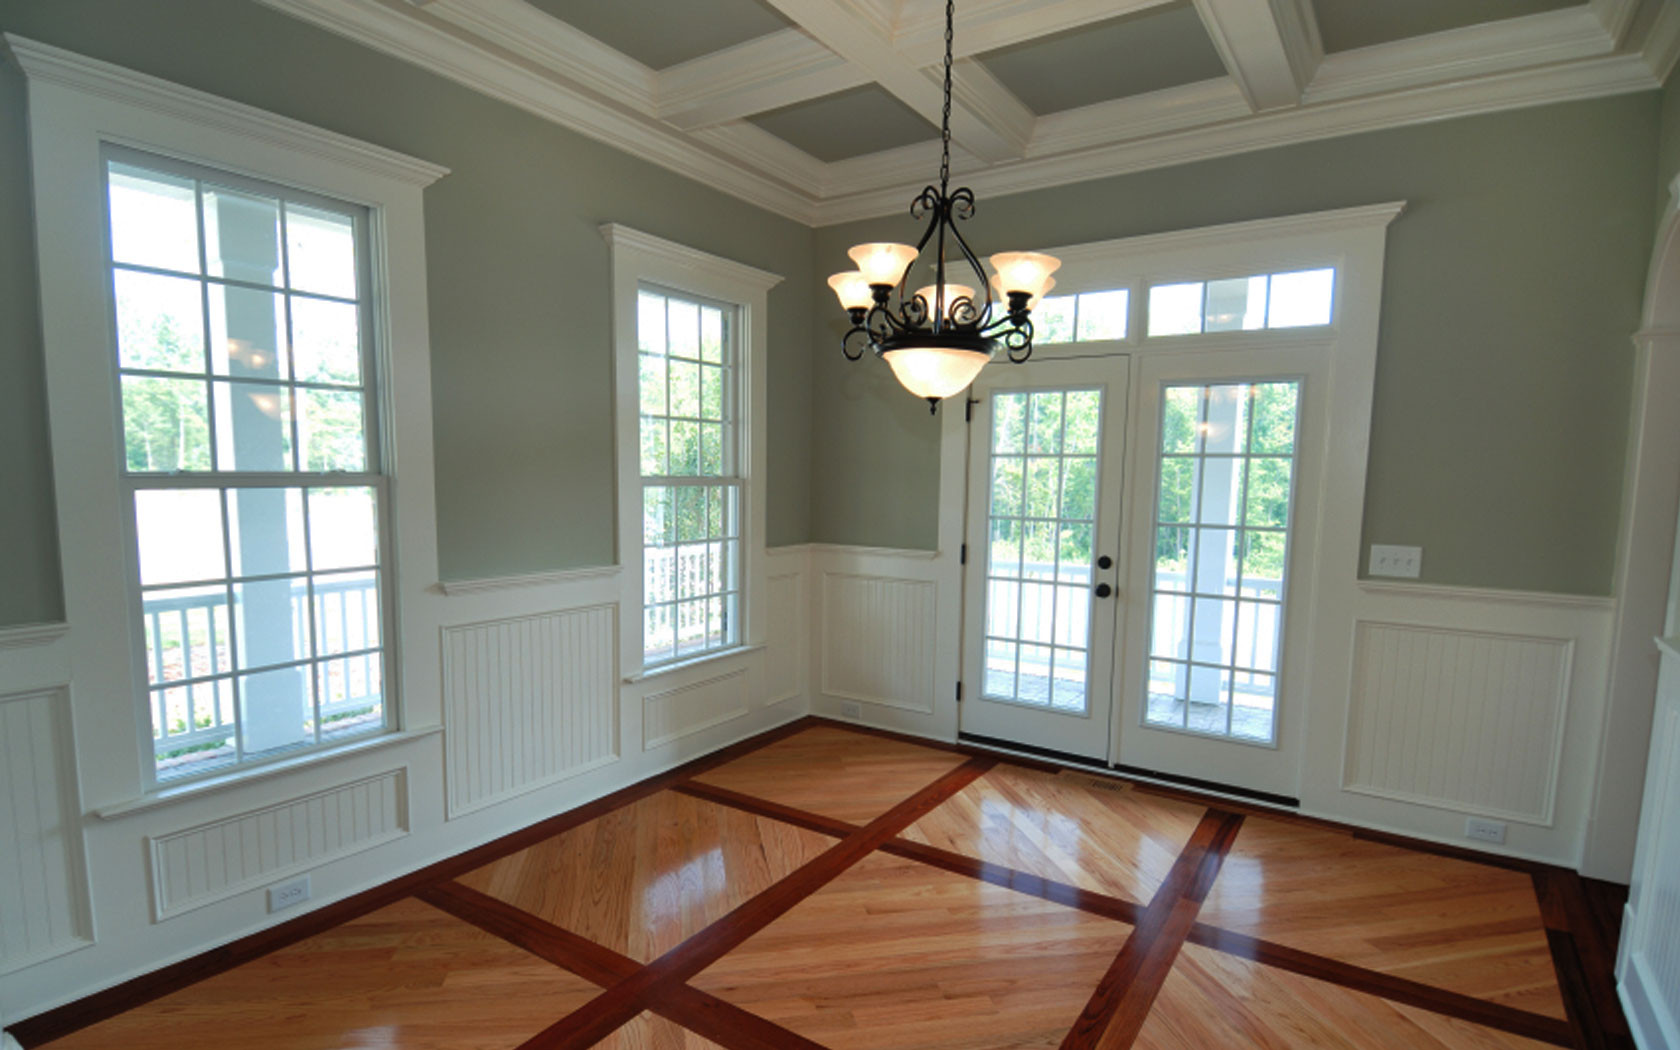 Best ideas about Wall Paint Colors . Save or Pin Interior Wall Paint Colors and Ideas Now.